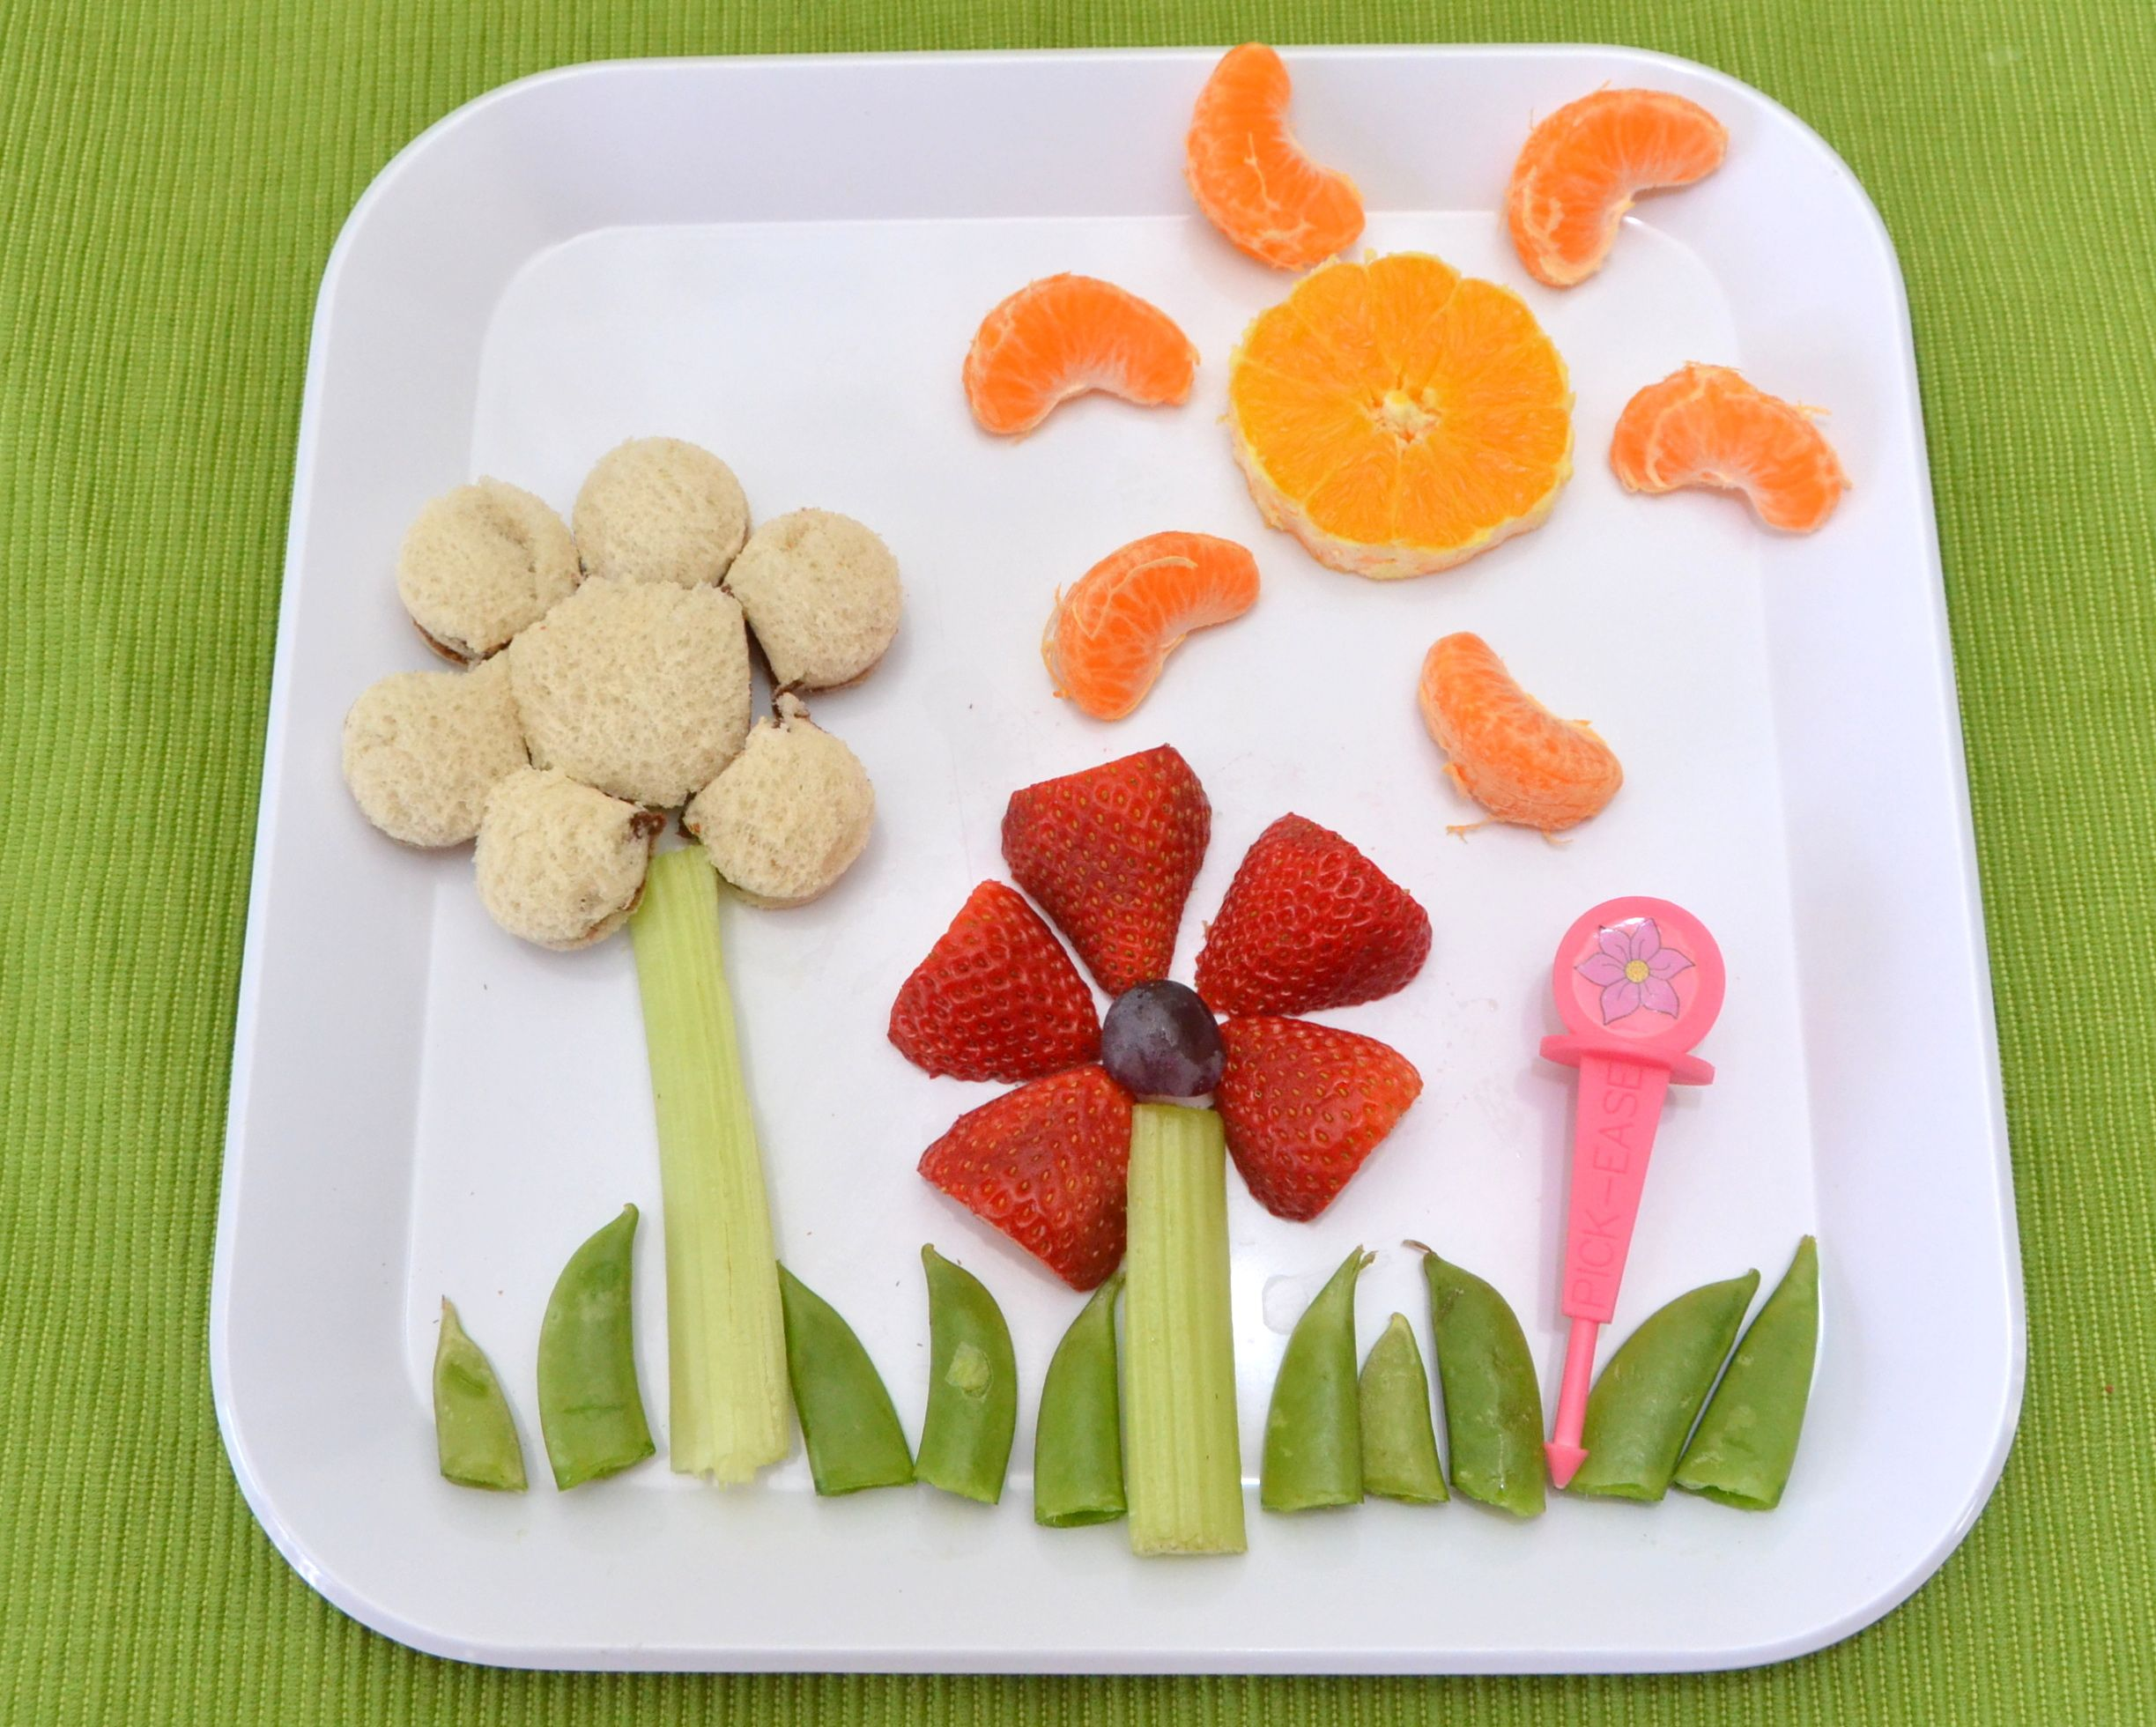 Childrens/' Utensils The Fun Solution For Picky Eaters Pick-Ease Picnic Pack